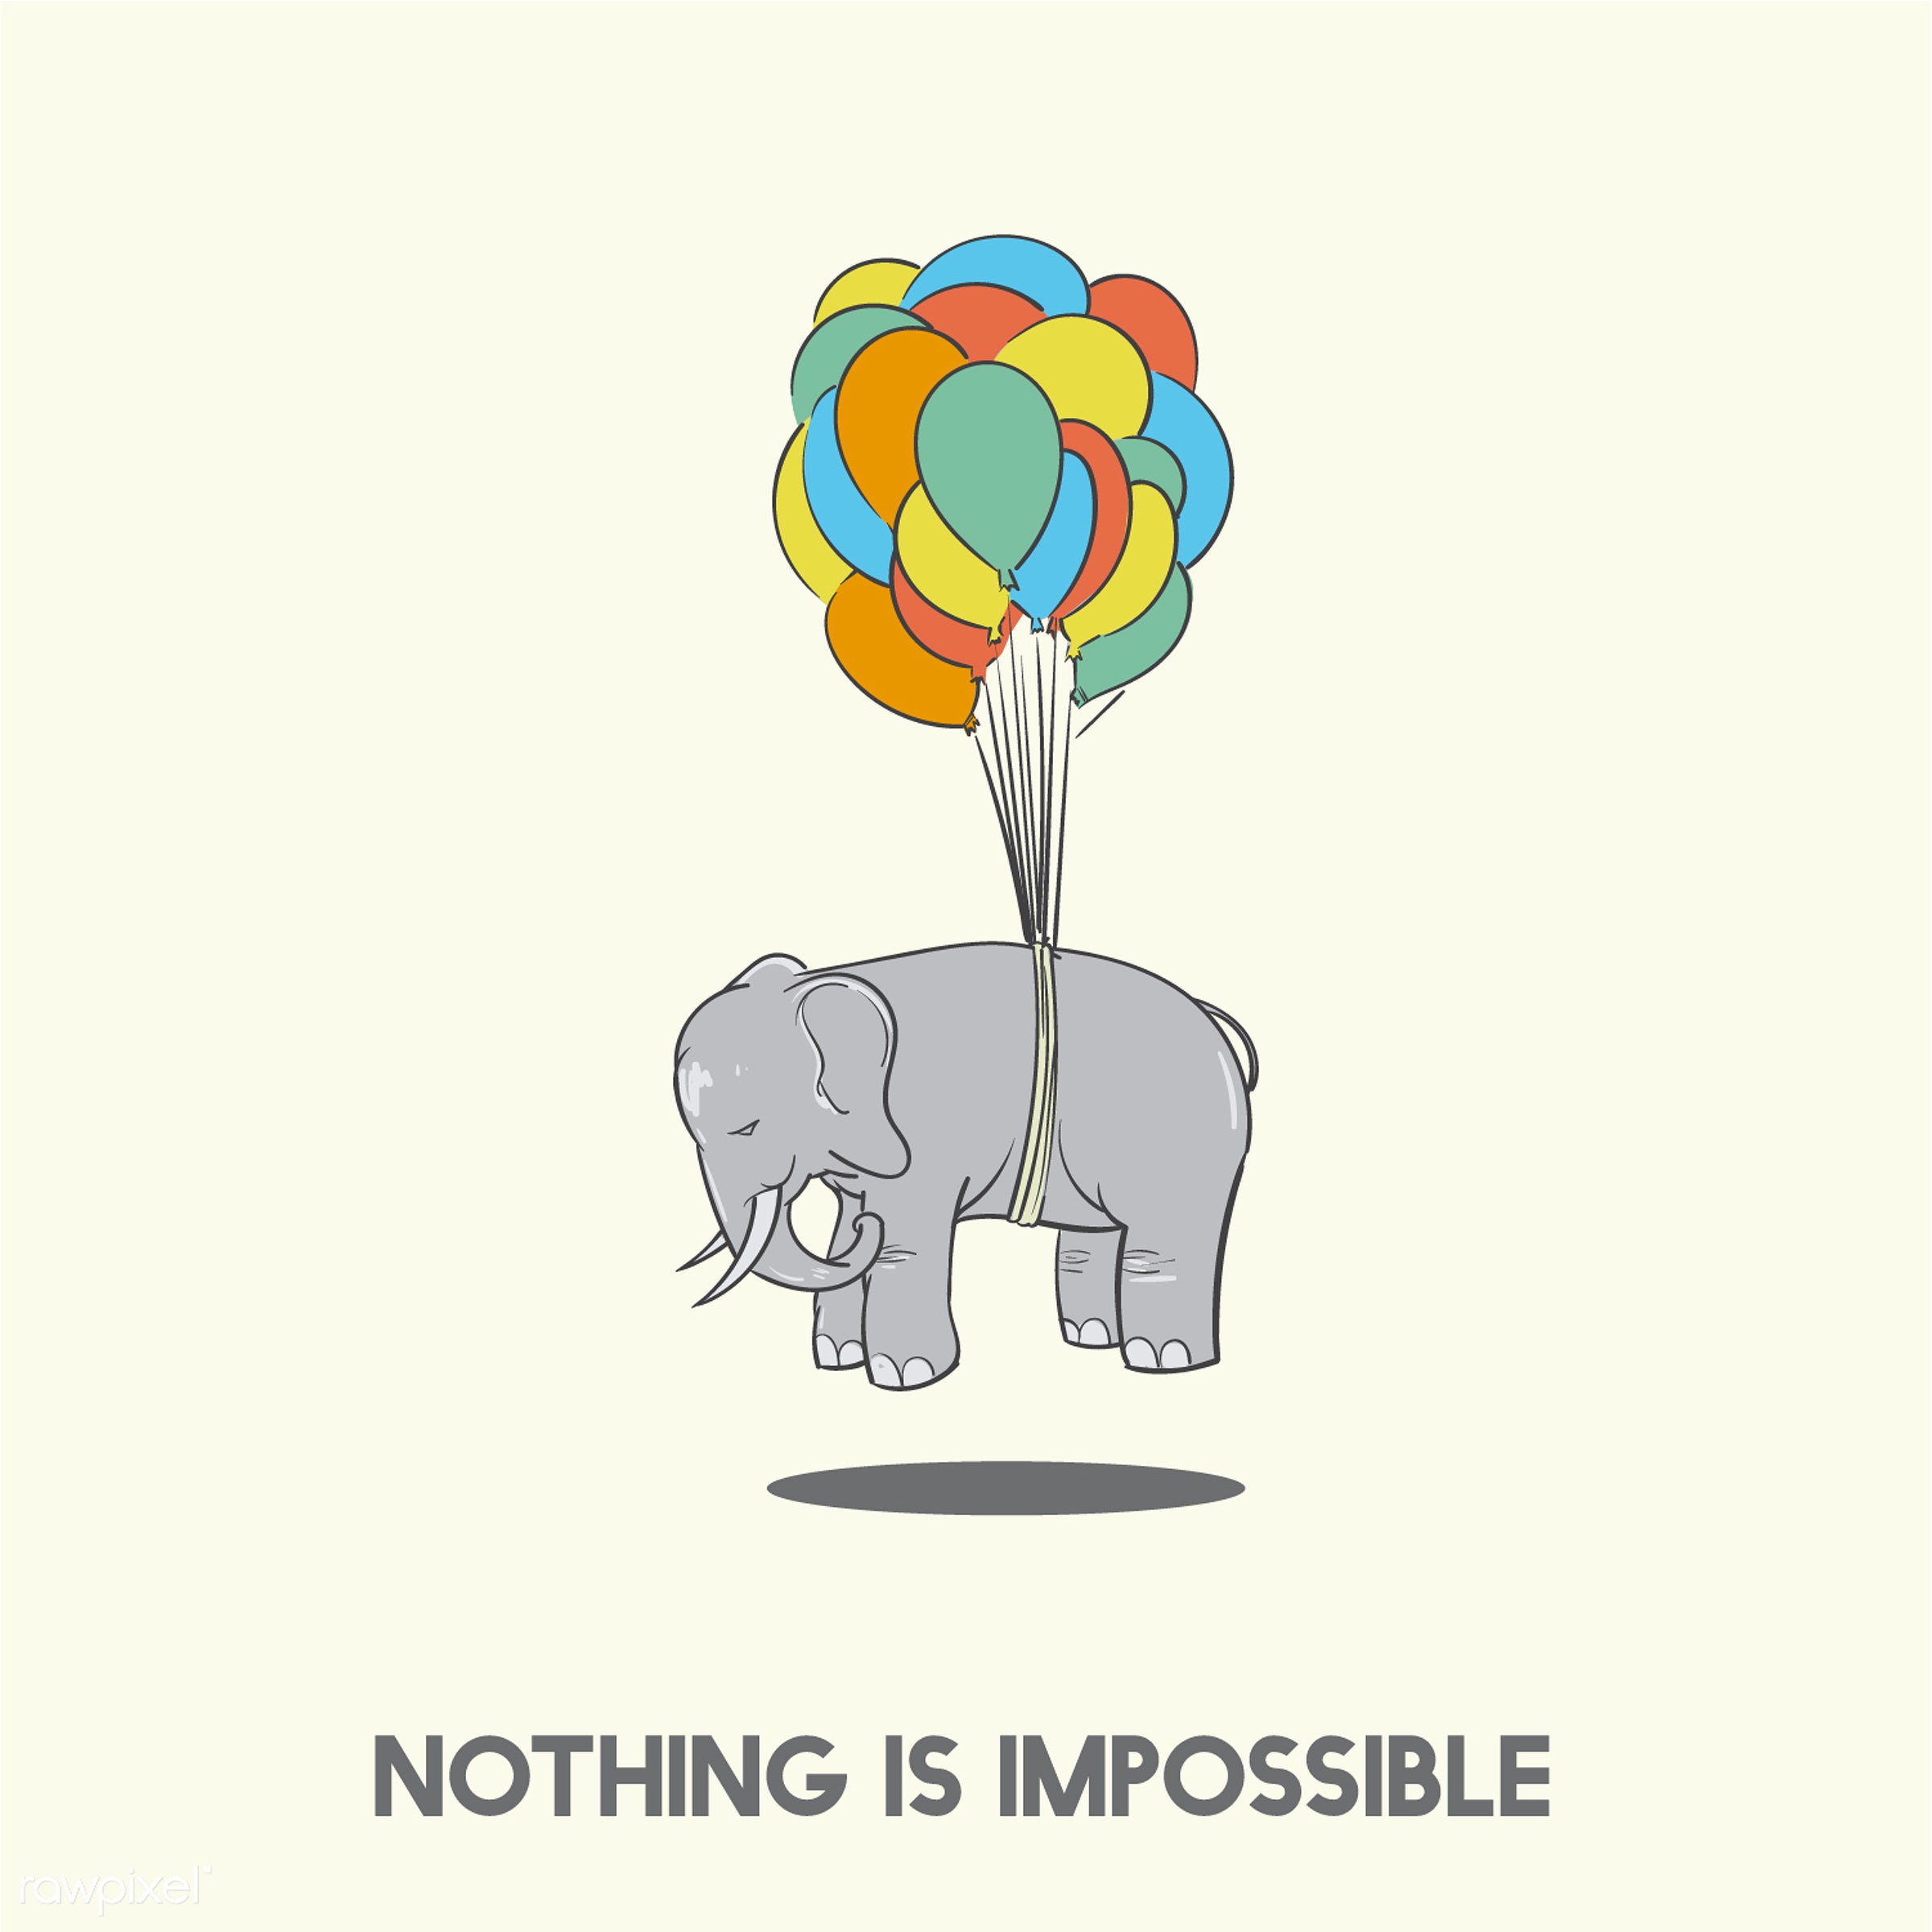 afloat, air, animal, art, balloon, creative, creativity, design, drawing, drawn, elephant, elevated, floating, flying,...